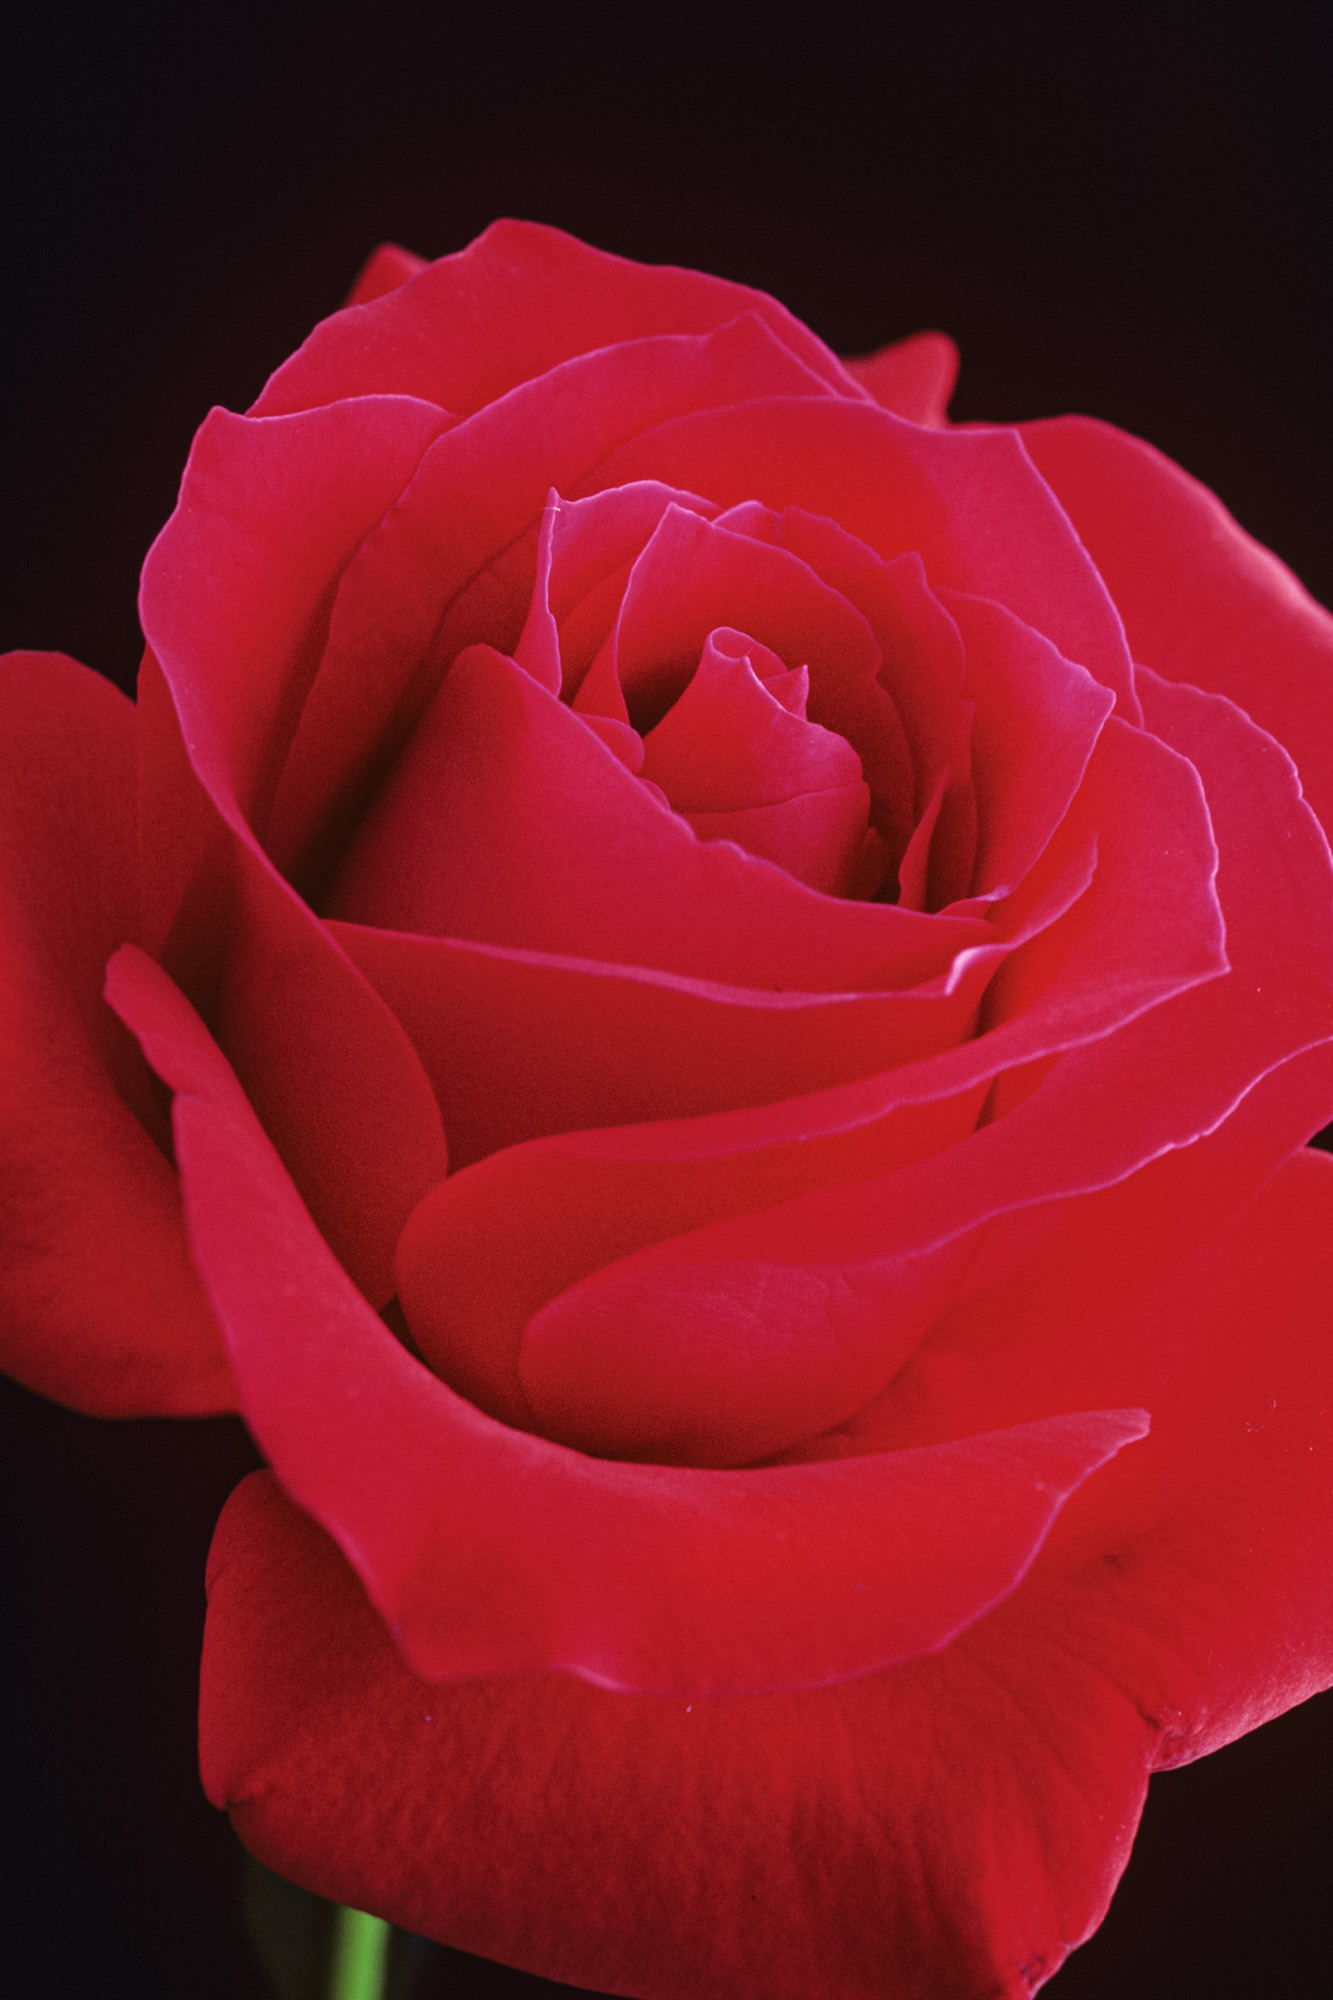 a red rose against a black backdrop